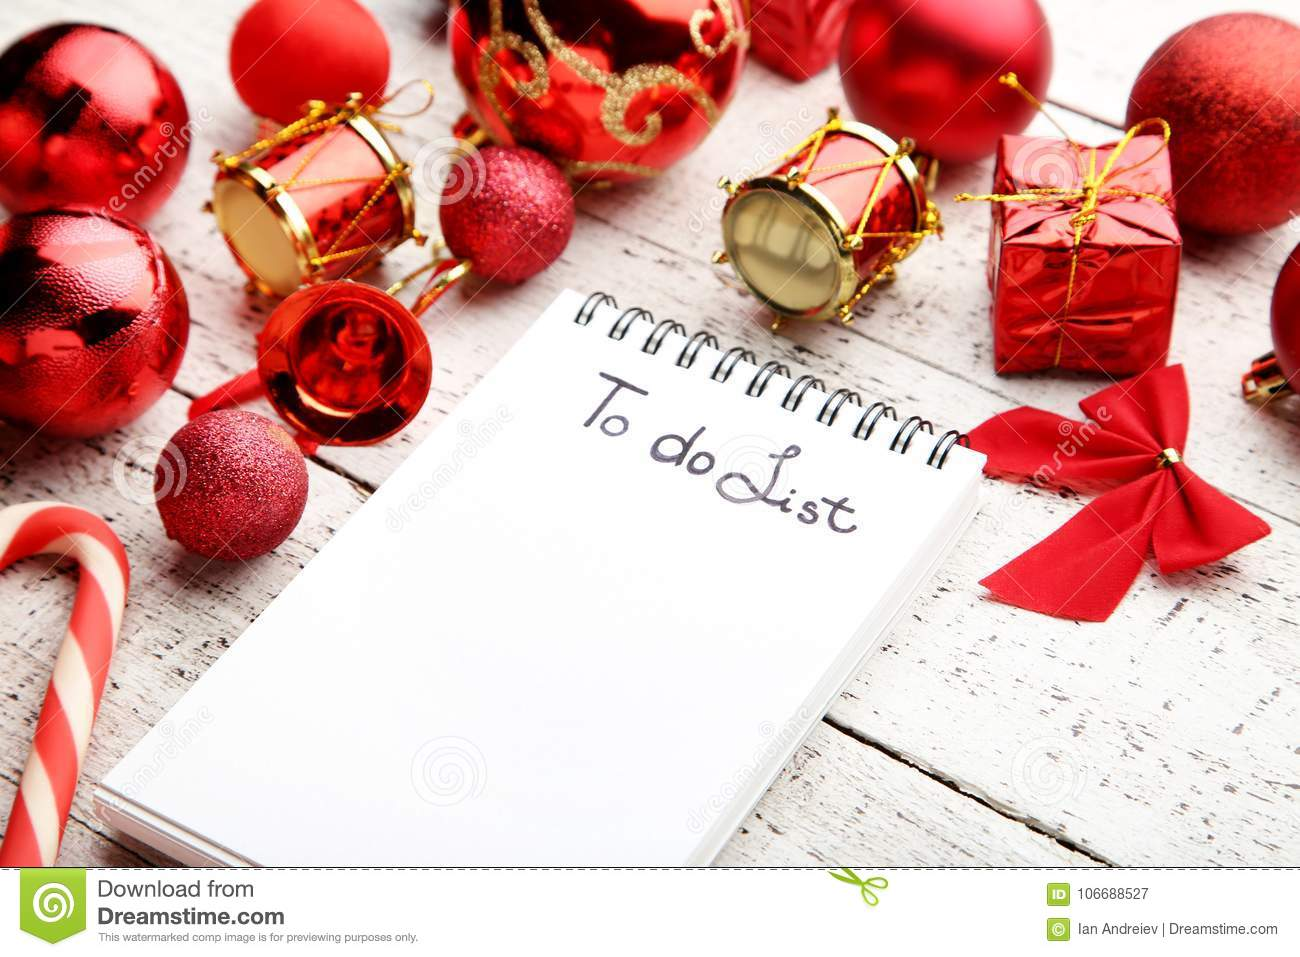 download to do list with christmas decorations stock image image of blank calendar